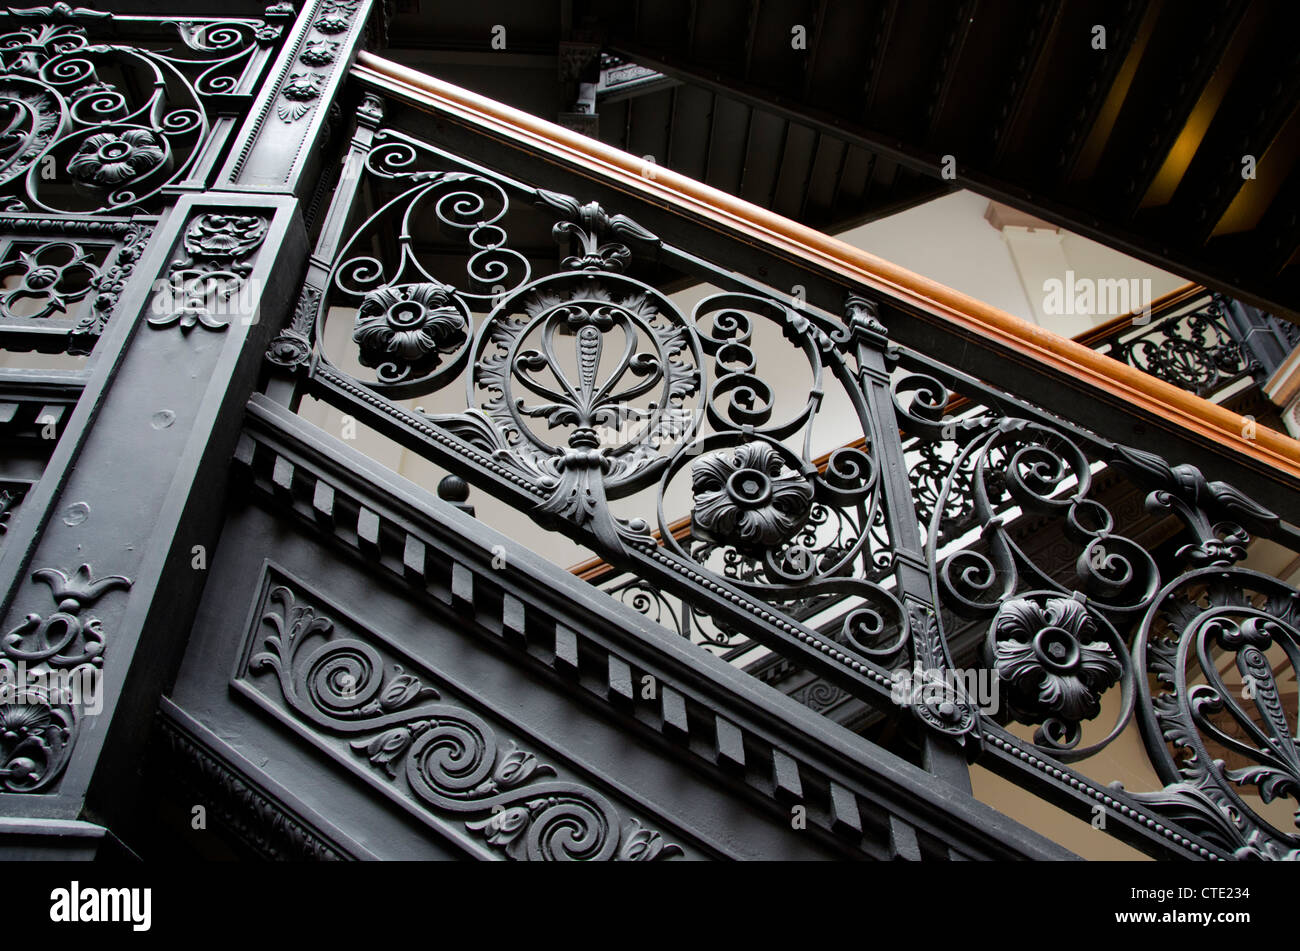 New York, Troy. The Historic Frear Building. Vintage Staircase With Ornate  Wrought Iron Railing.